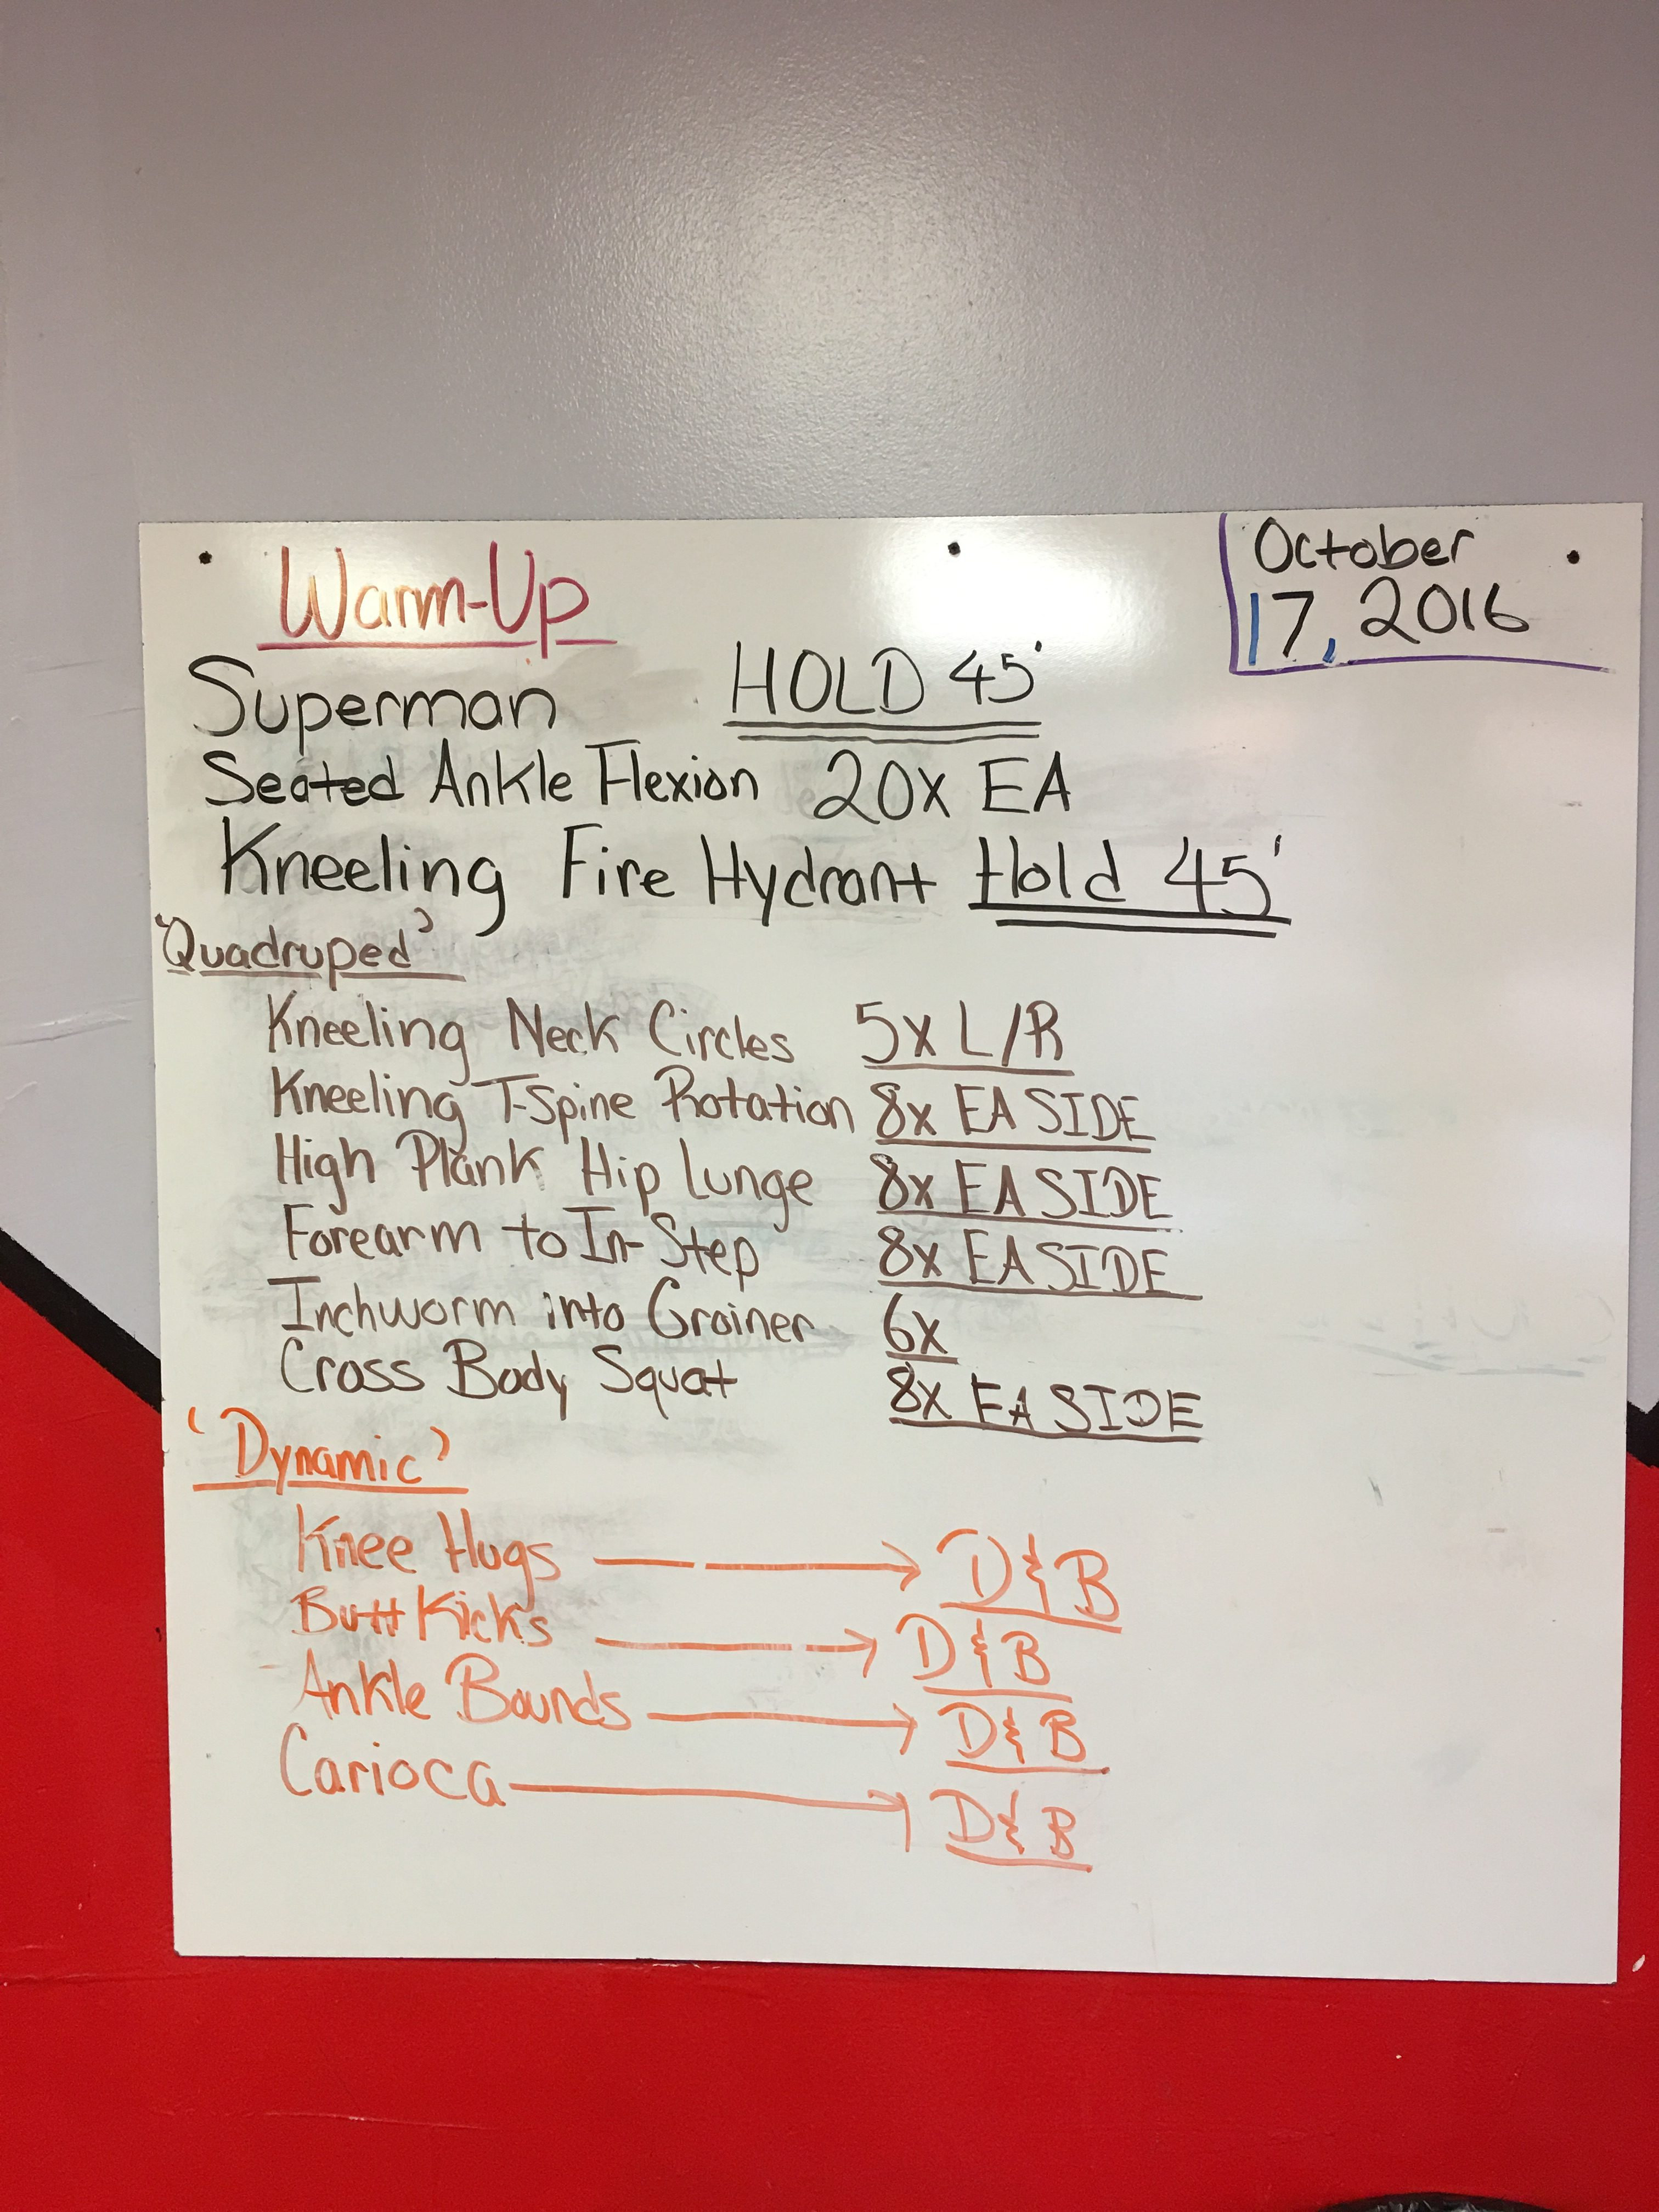 Our dynamic warm-up board.